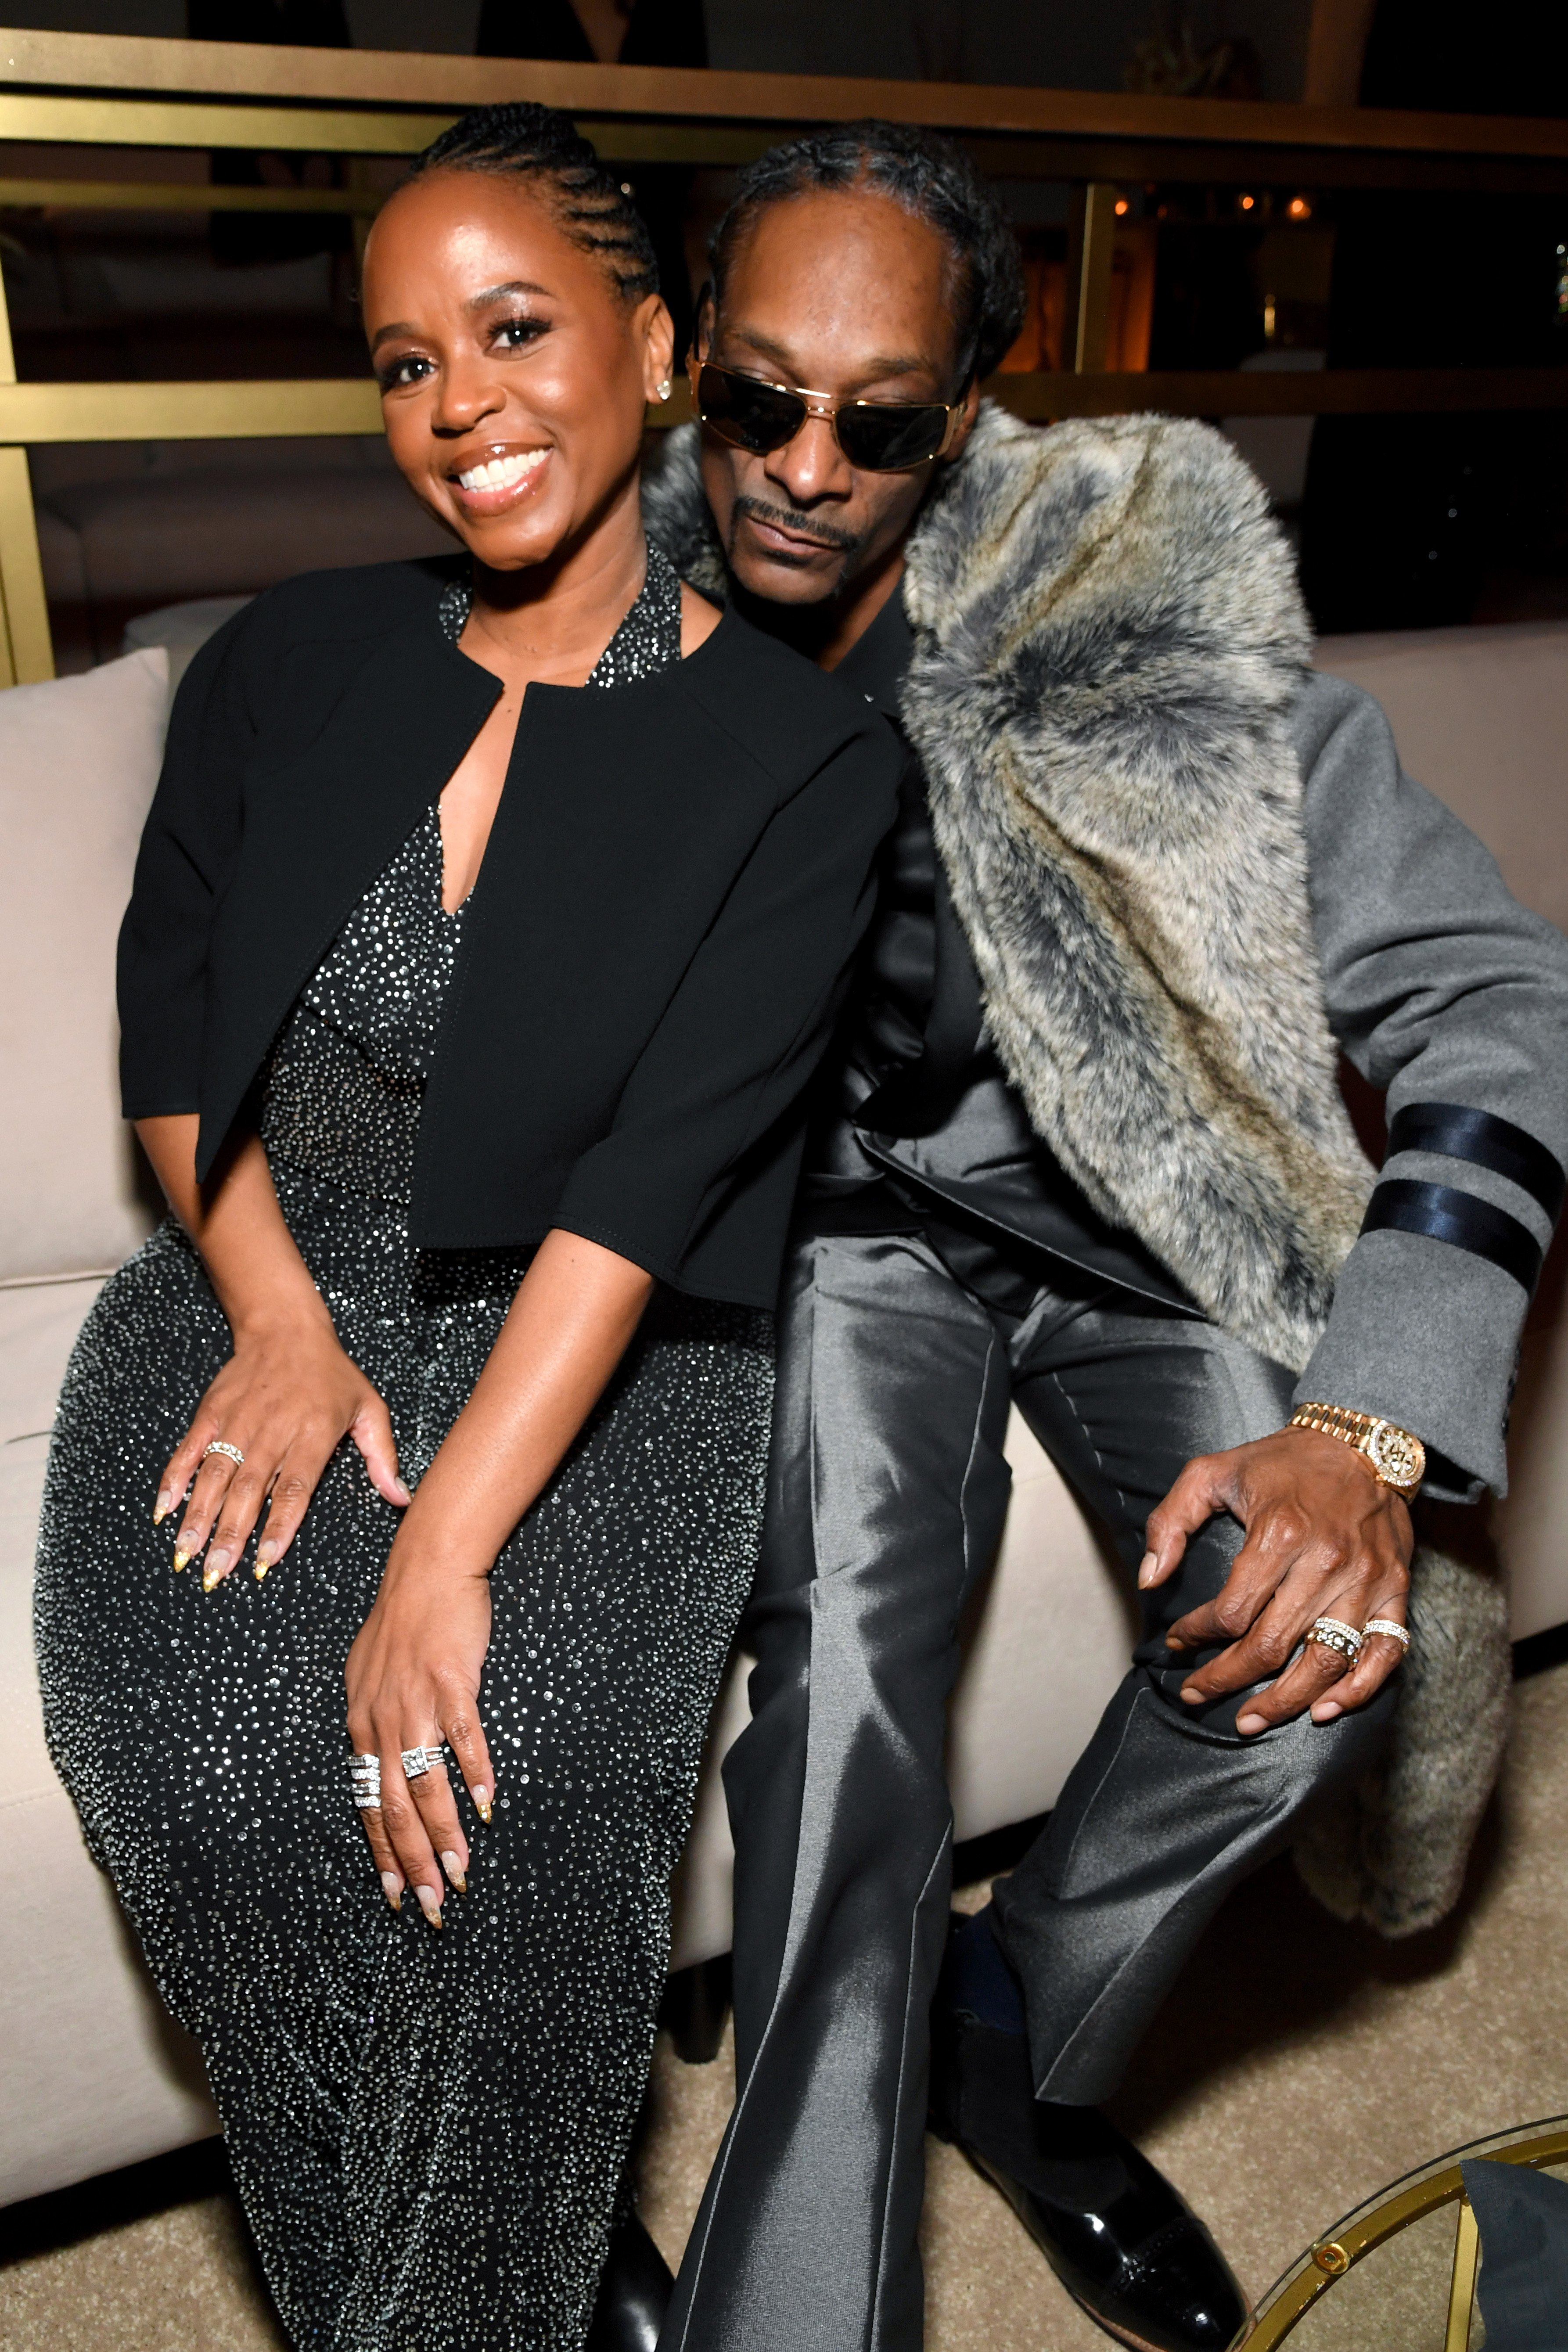 Shante Broadus and Snoop Dogg attend Sean Combs 50th Birthday Bash presented by Ciroc Vodka on December 14, 2019 | Photo: GettyImages